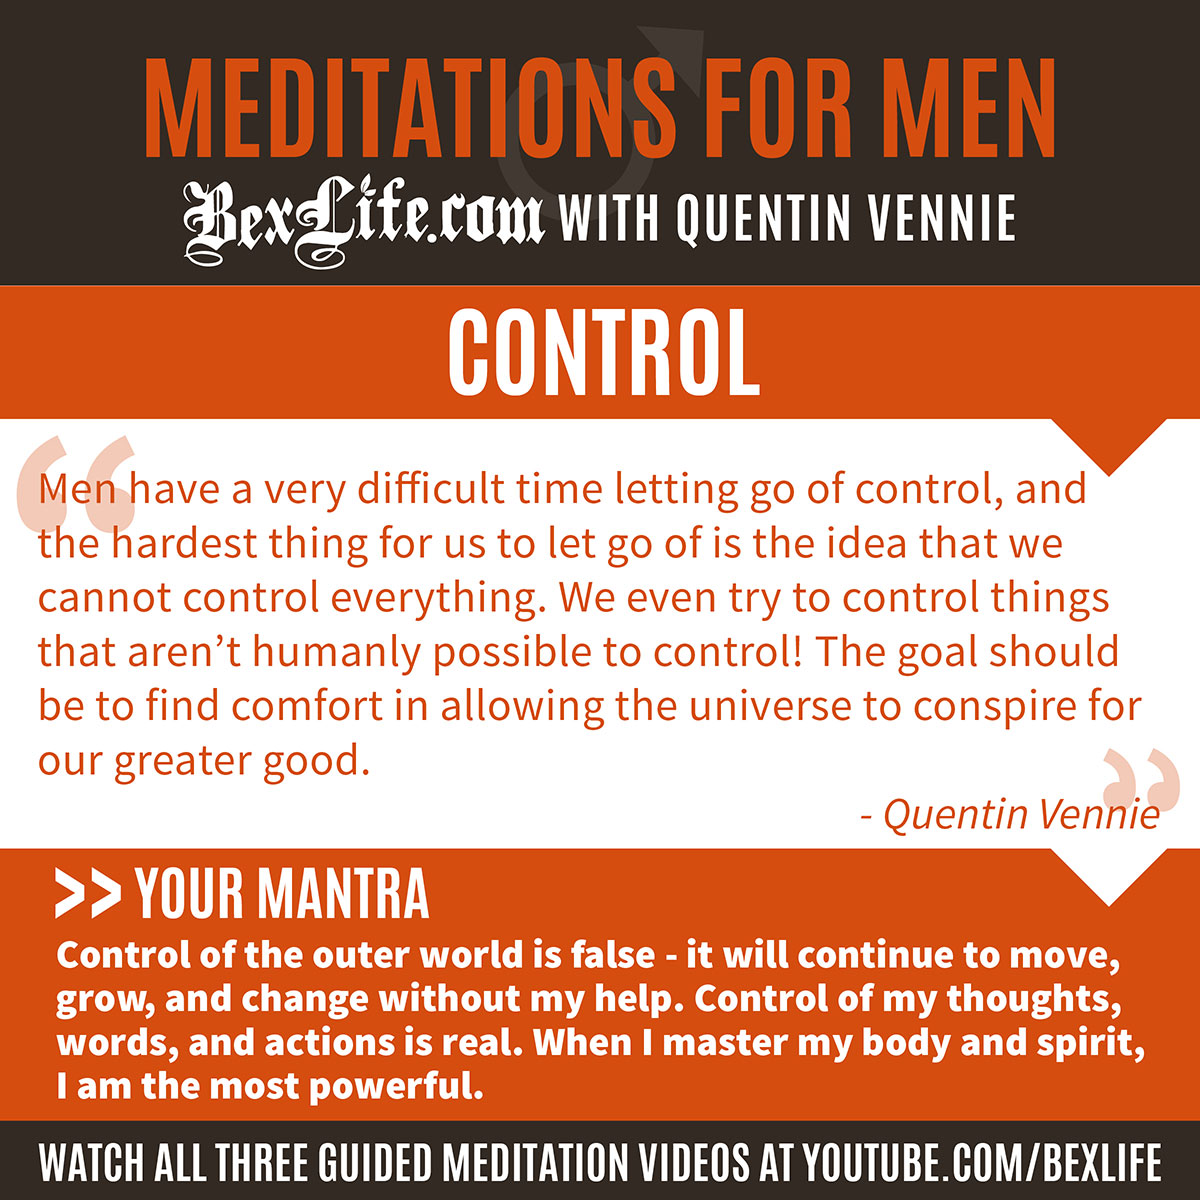 Three meditation videos for men to deal with anger, control, and vulnerability.